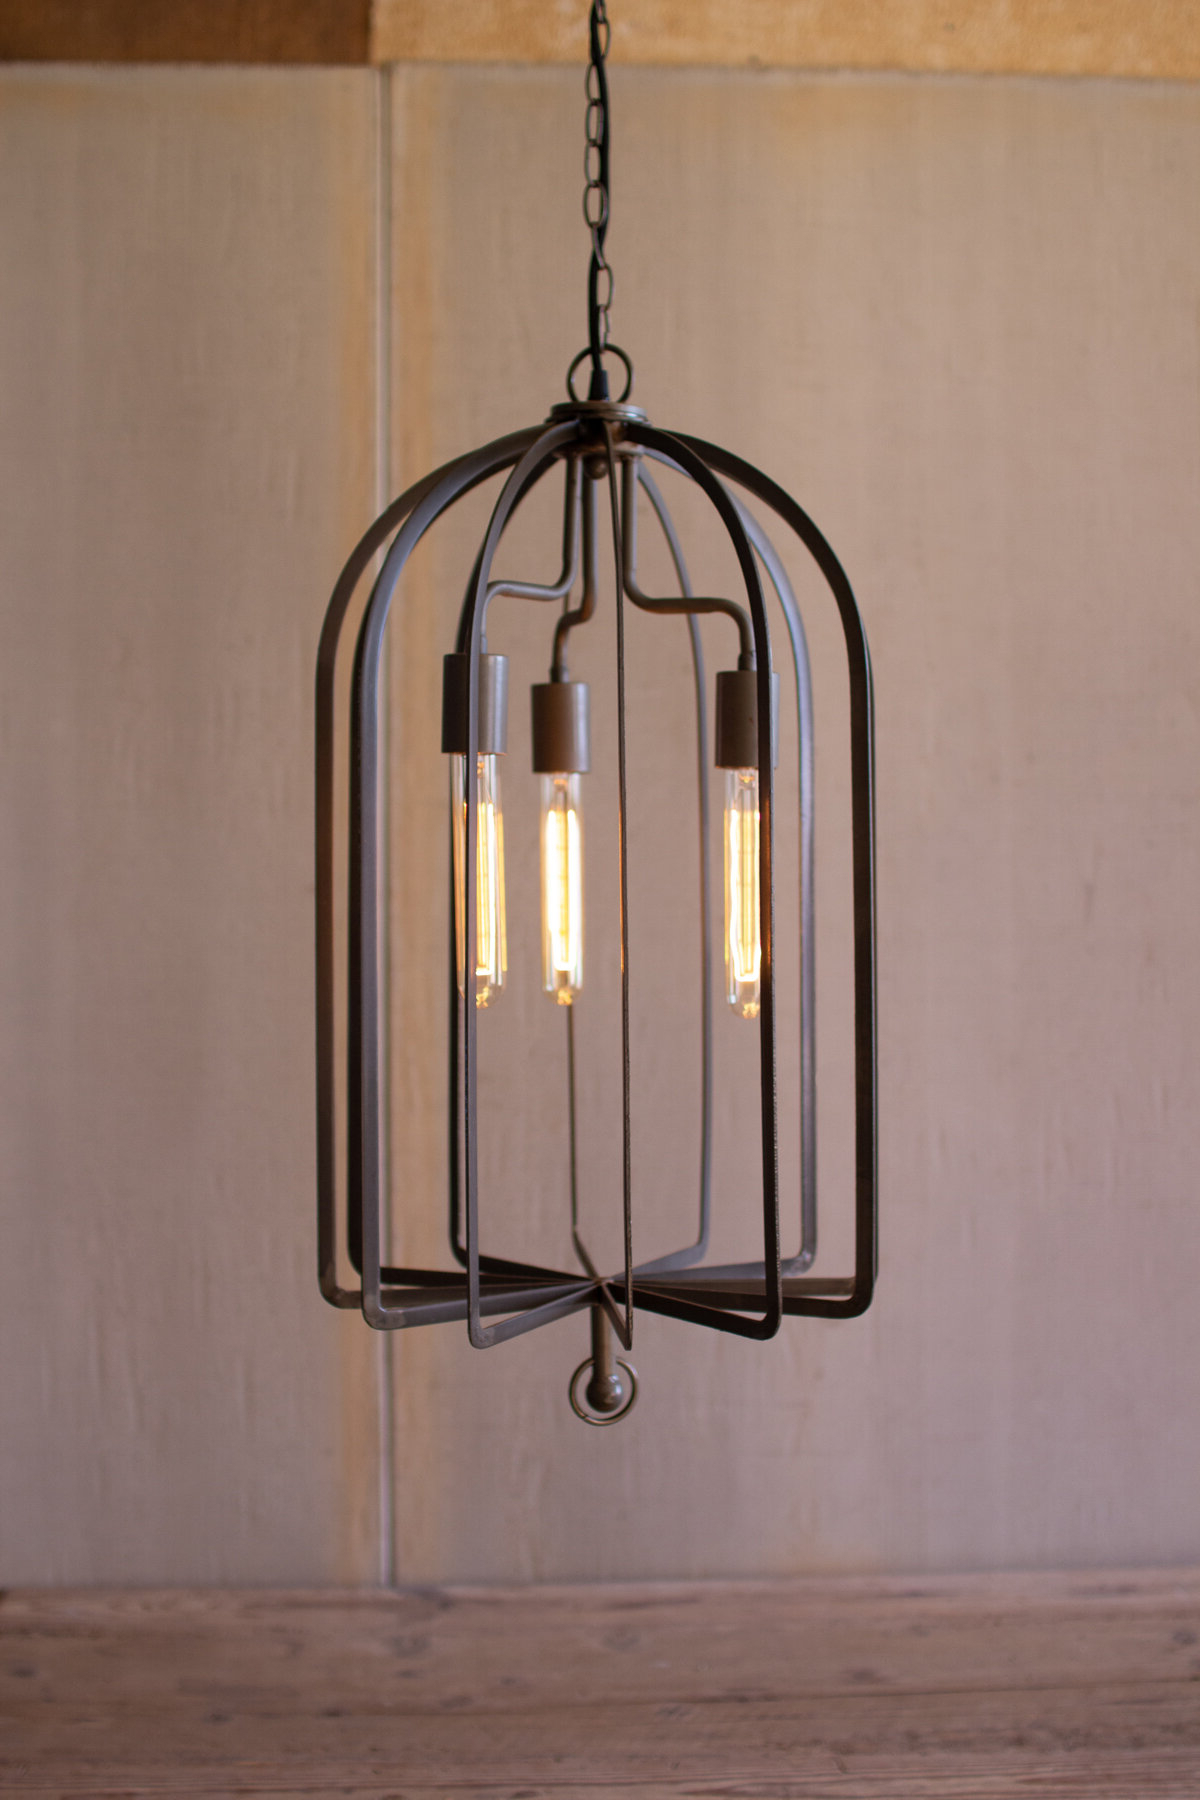 Chauvin 3 Light Lantern Geometric Pendants Throughout Widely Used Streit 3 Light Lantern Cylinder Pendant (View 10 of 25)